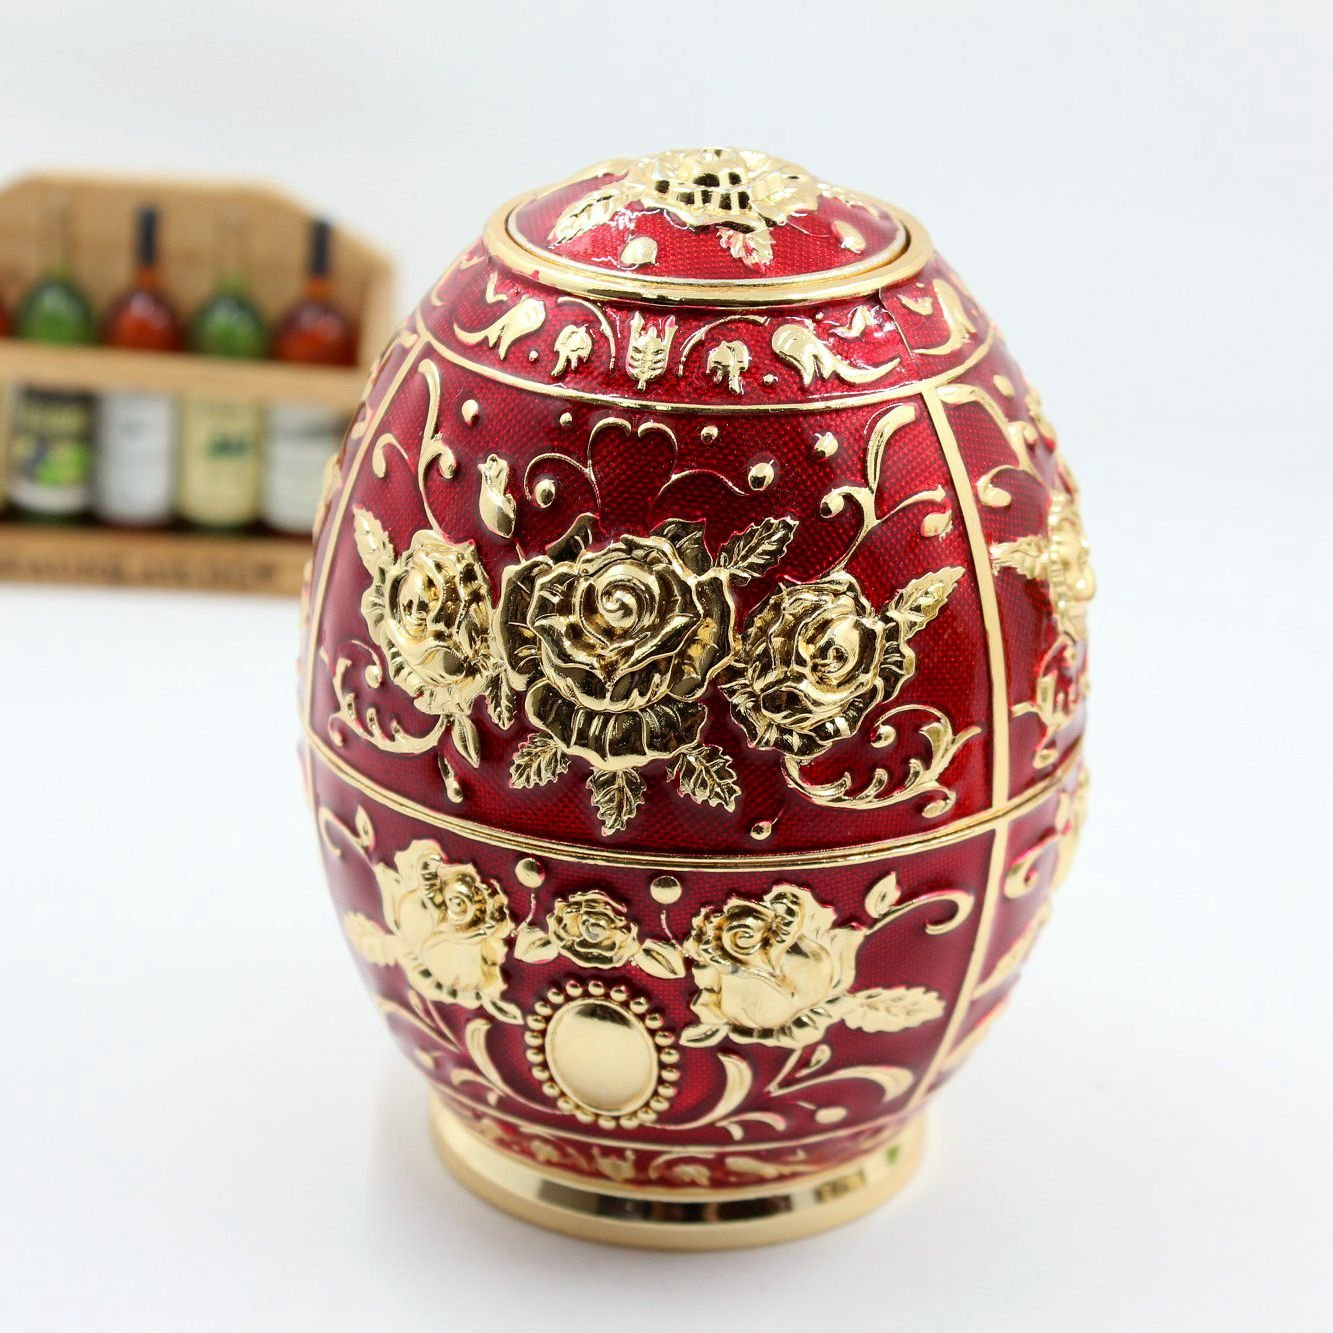 Enameled Faberge Egg Metal Toothpick Holder Shinny Gifts TXX001